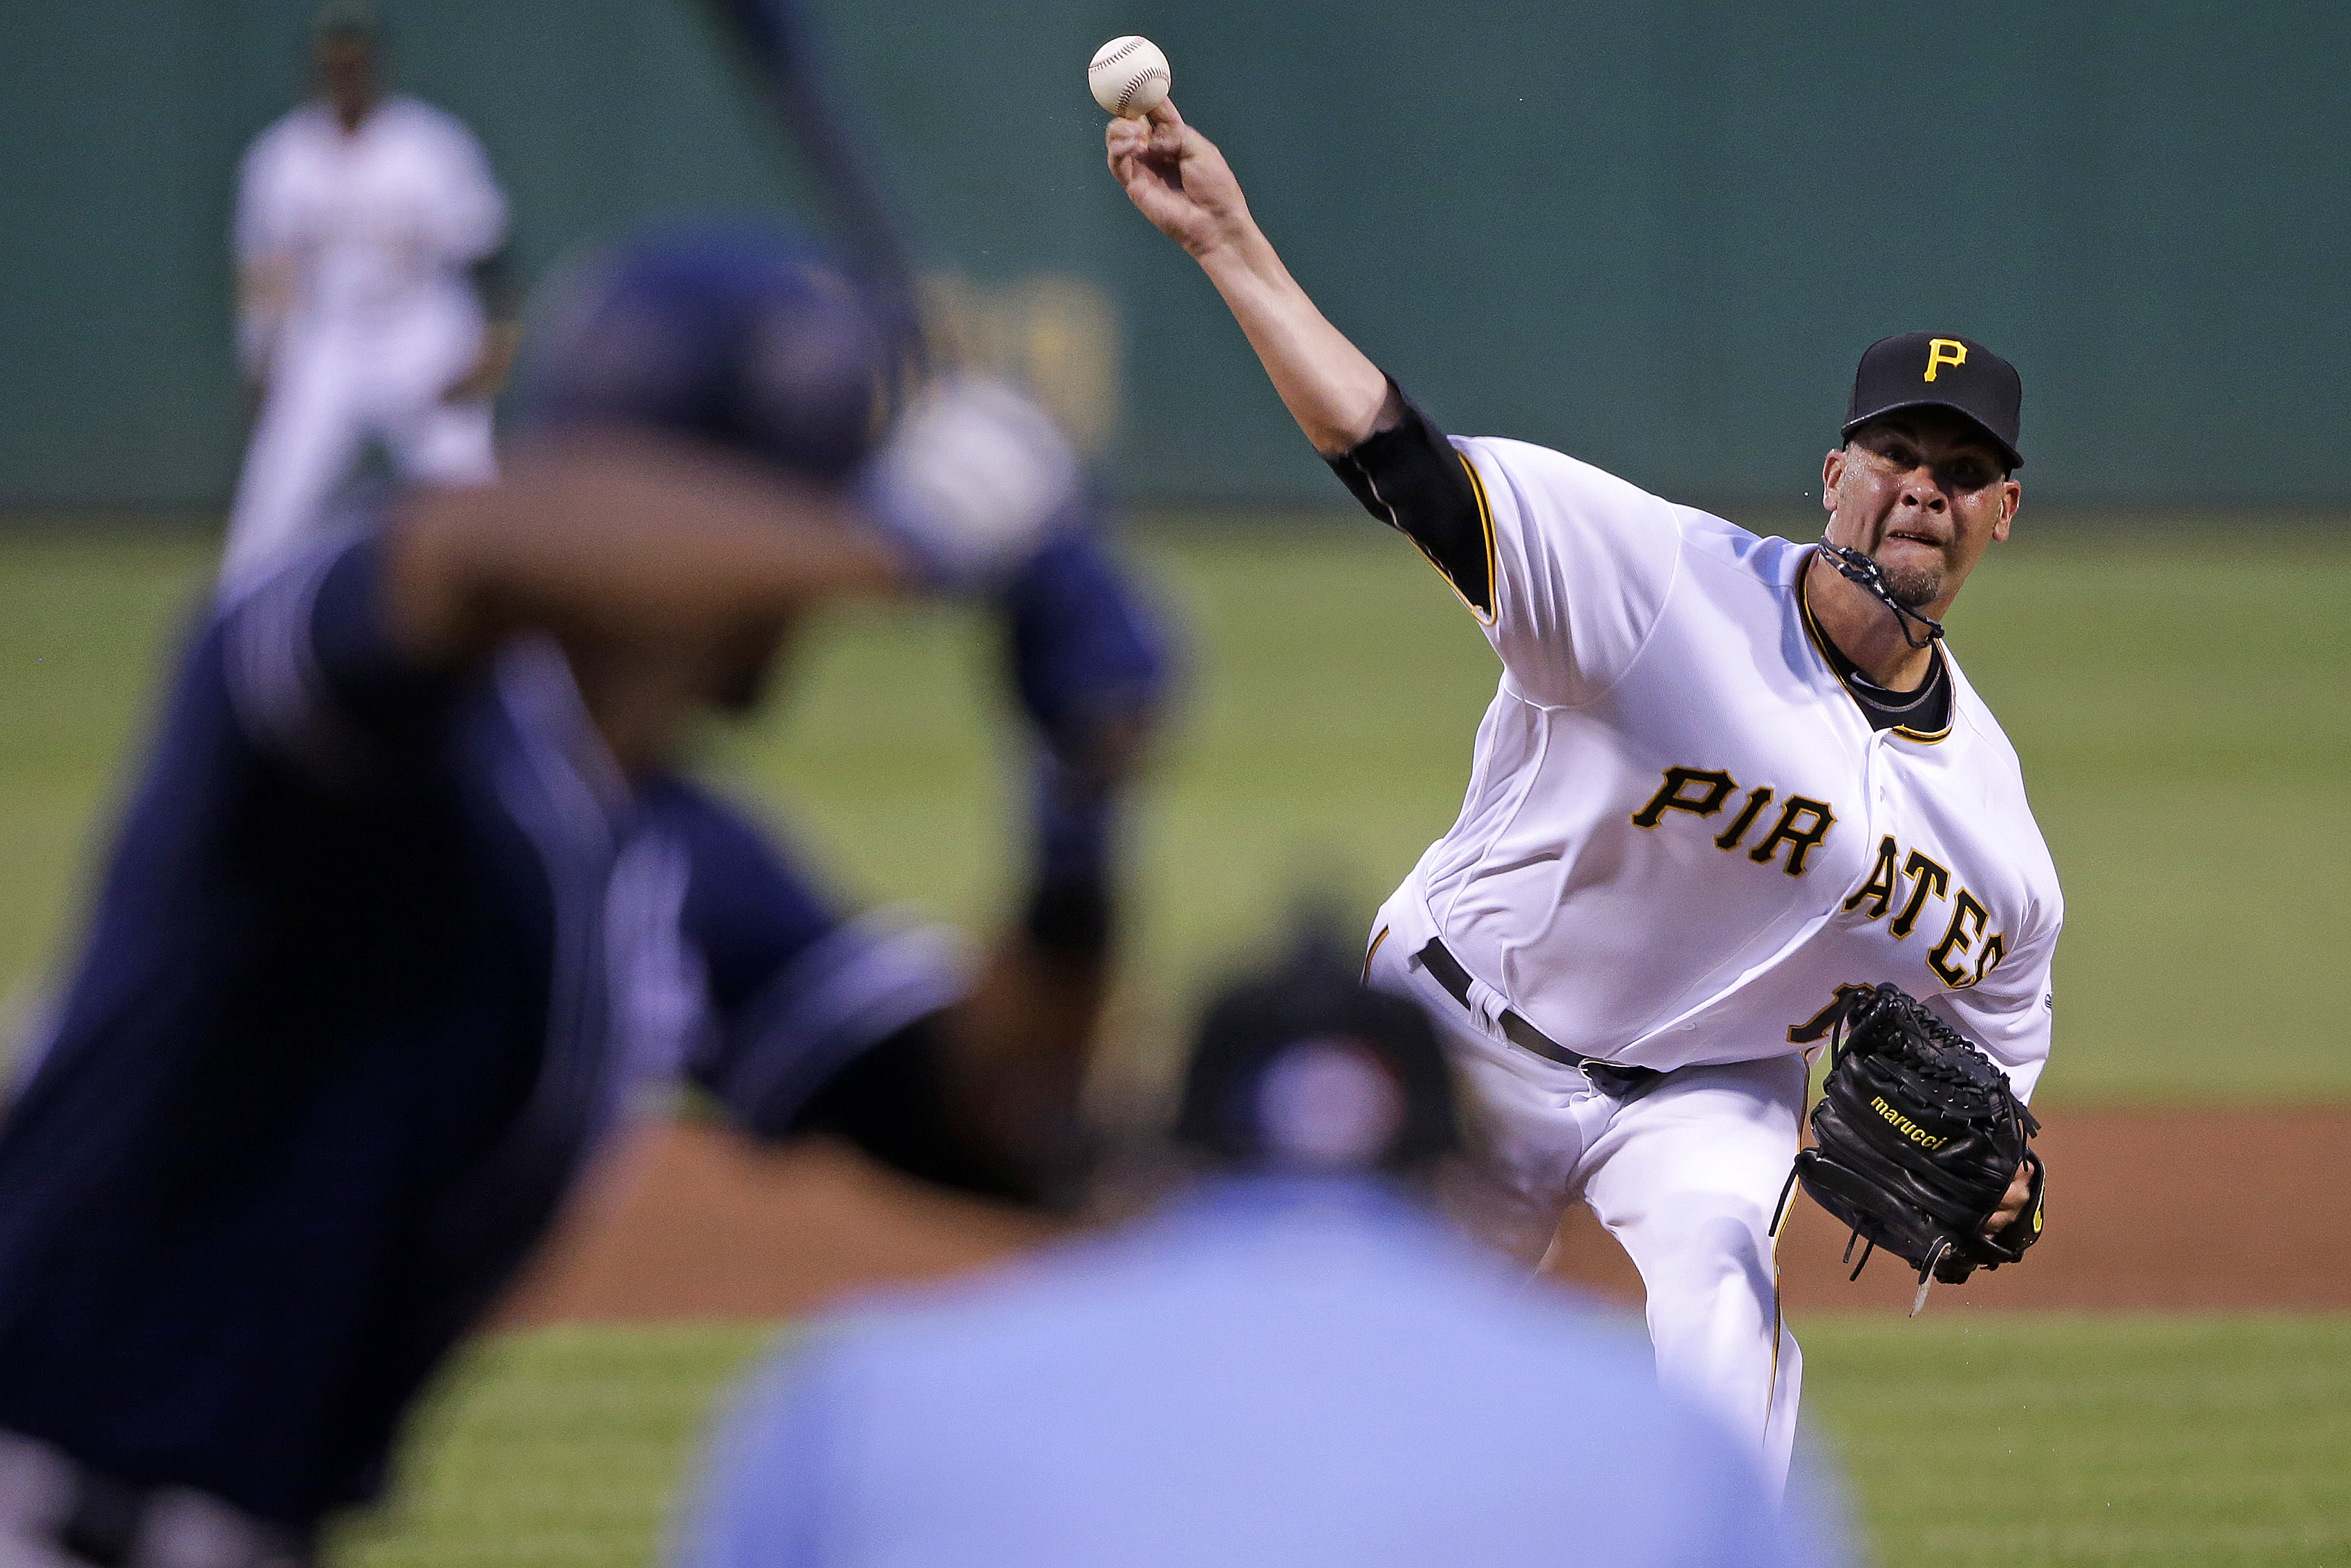 Return to San Francisco emotional for Pirates' Vogelsong